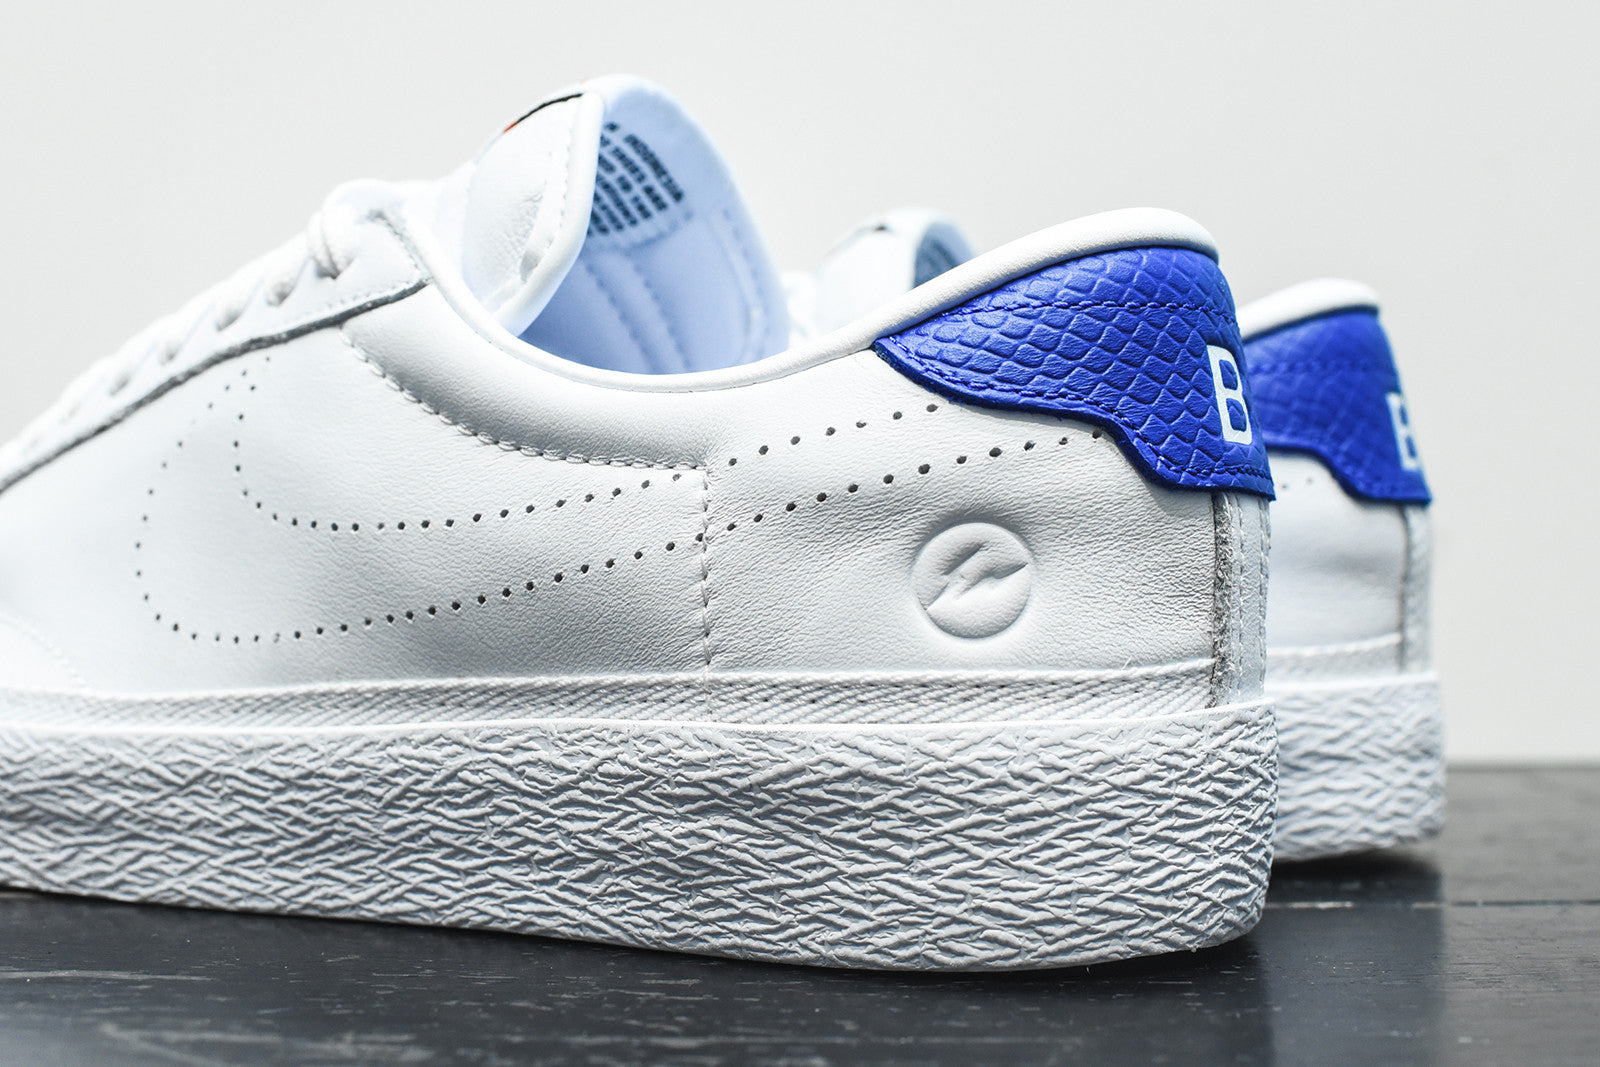 Nike x Fragment Design WMNS Air Zoom Tennis Classic - White / Royal